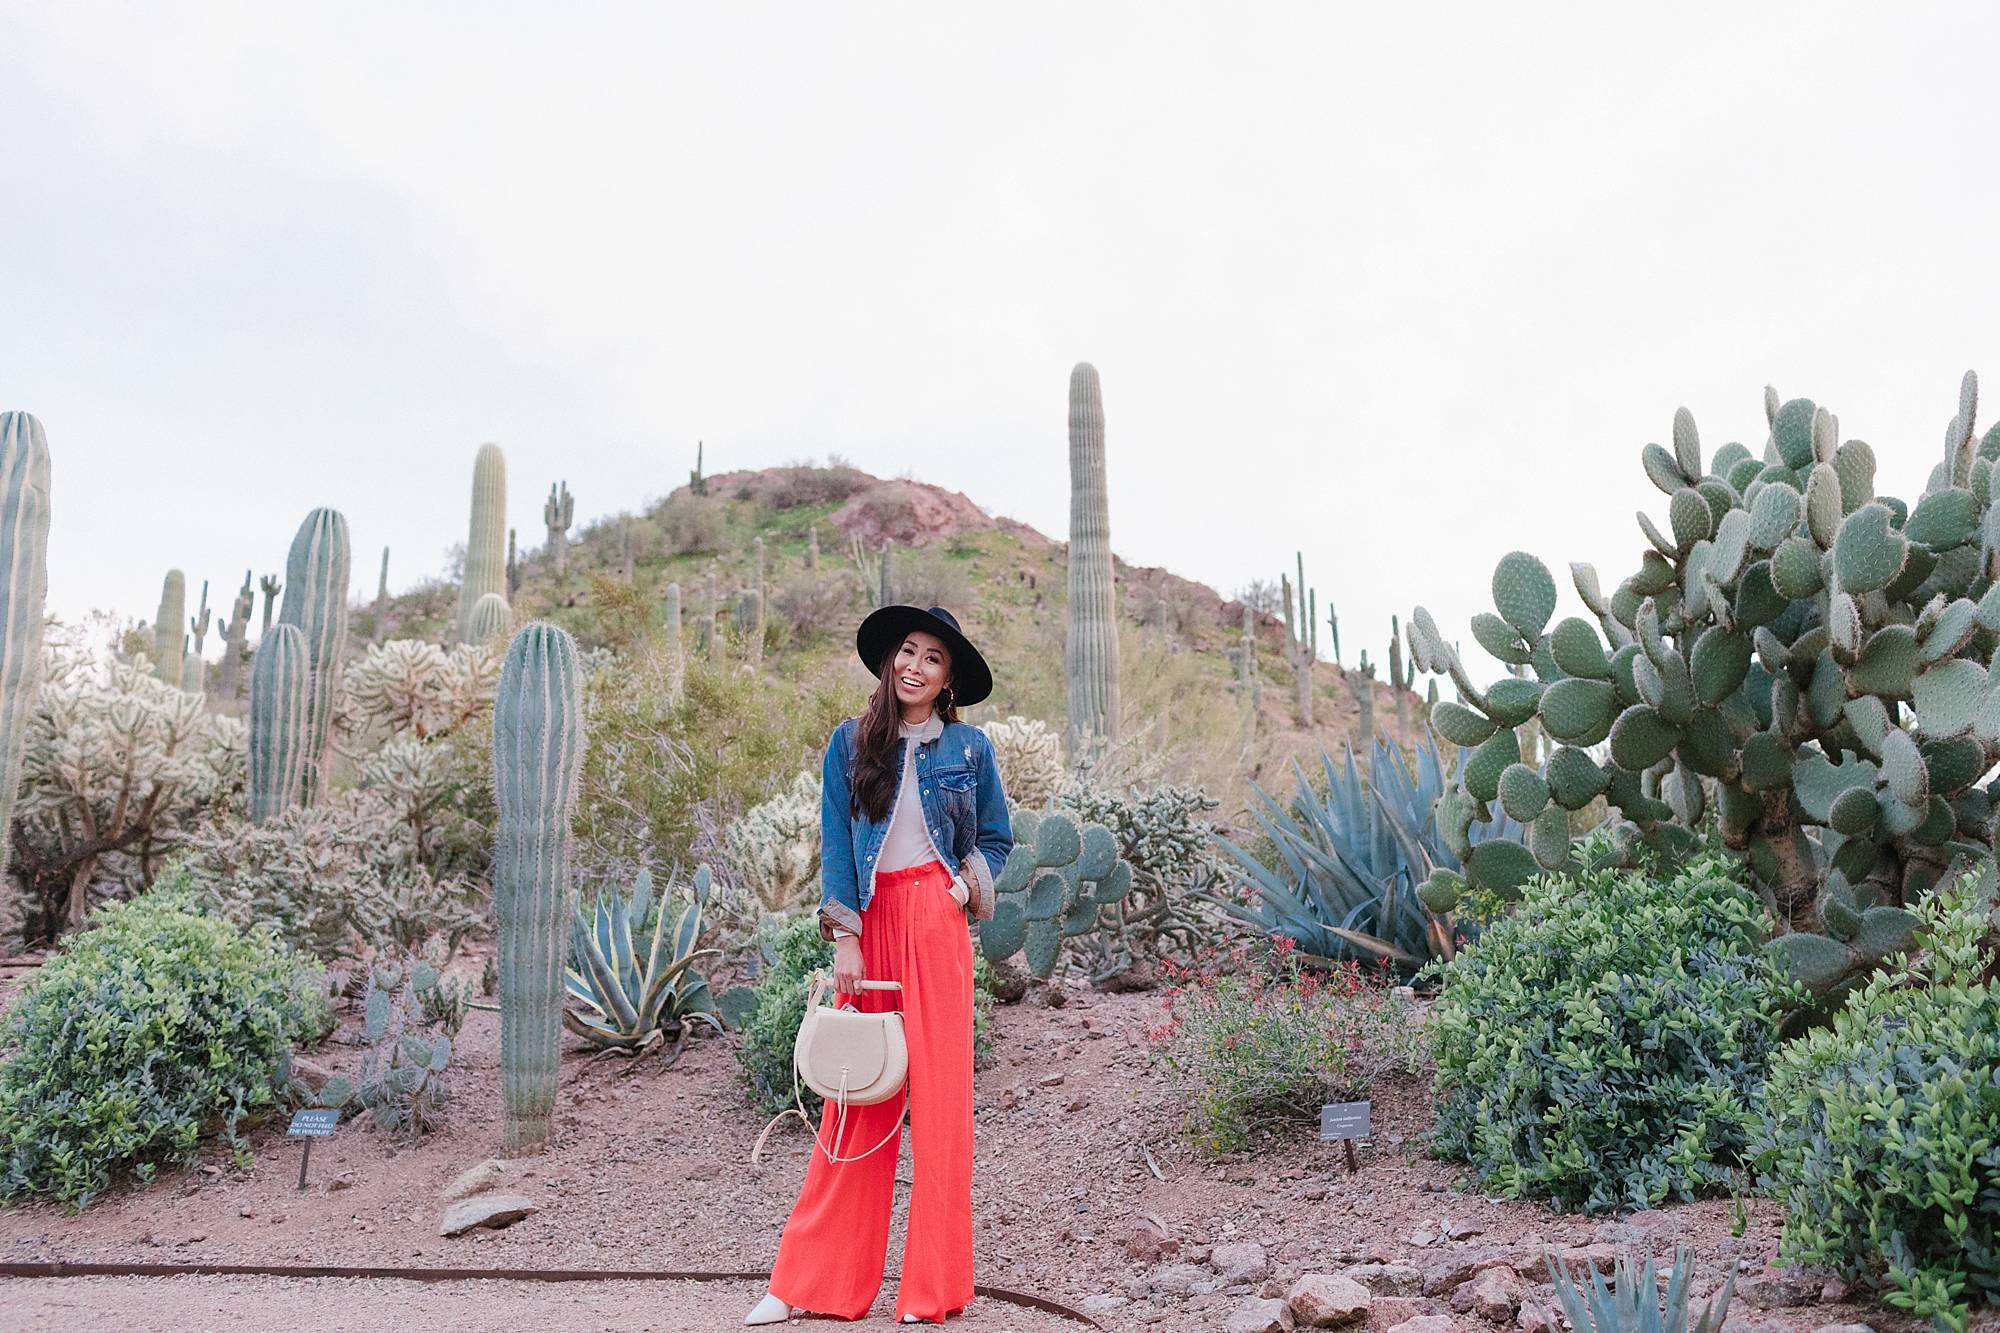 denim jacket orange pants black hat in desert landscape at desert botanical gardens